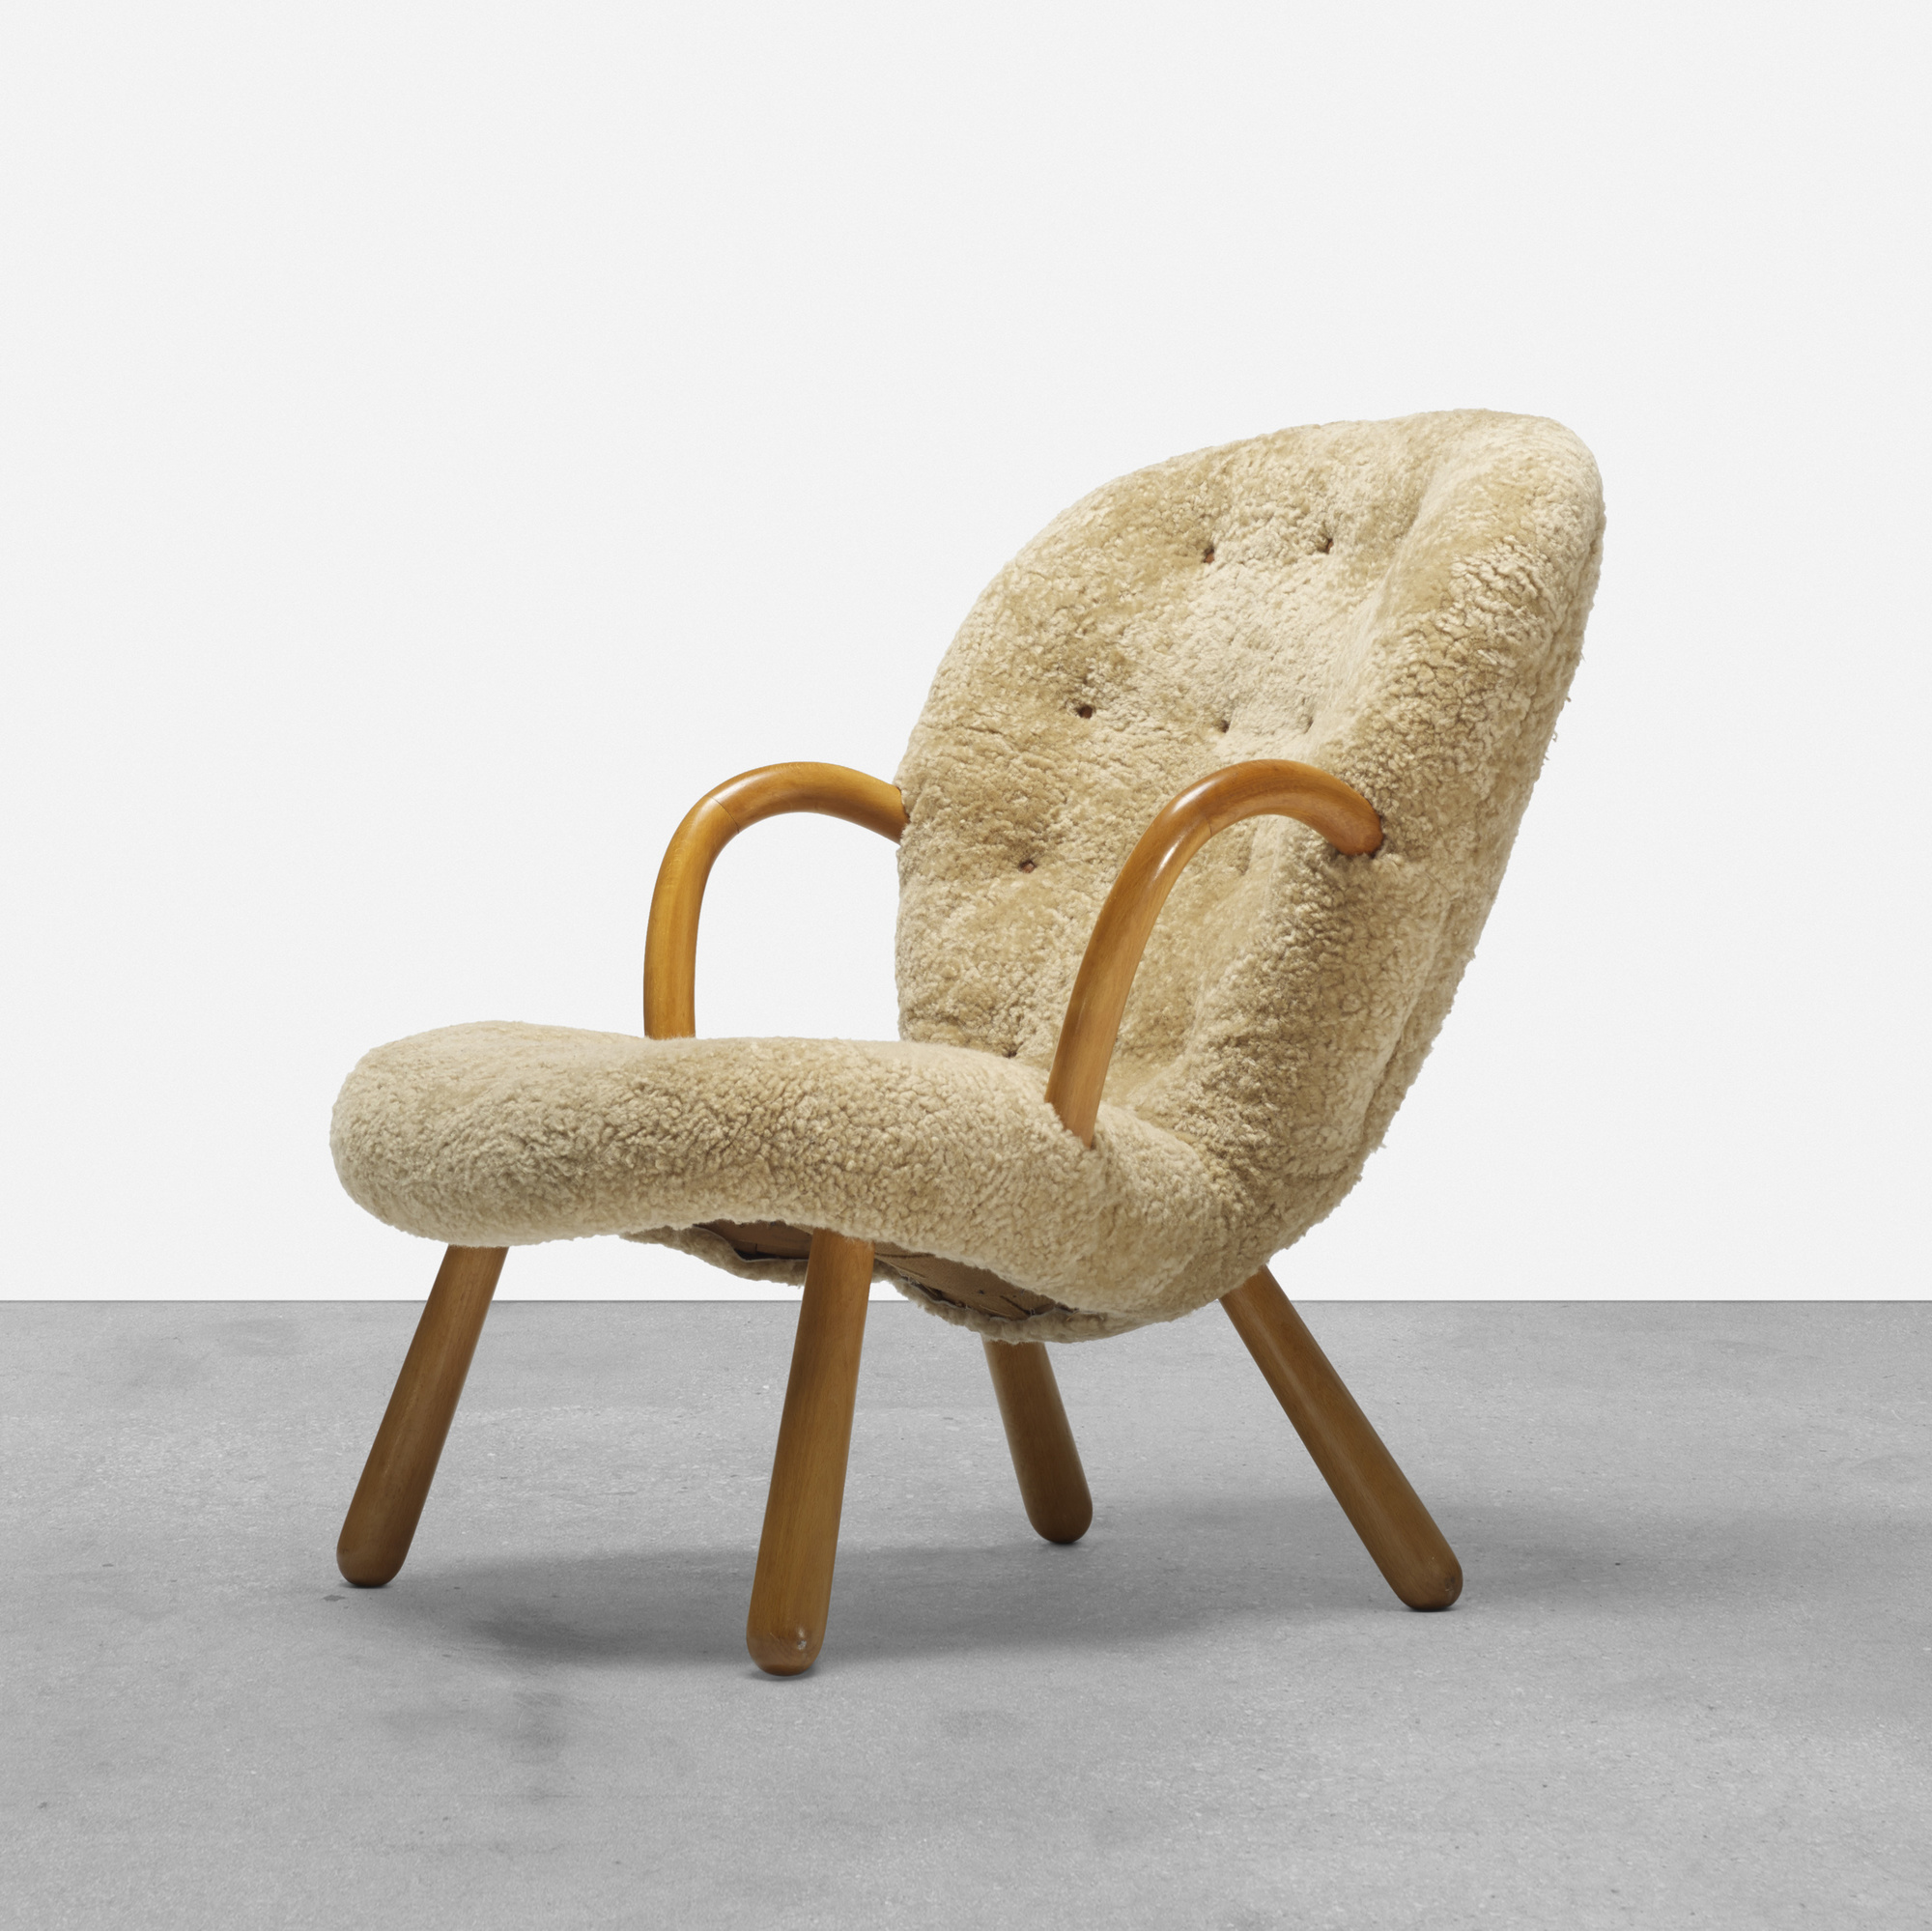 374: Philip Arctander / lounge chair (1 of 3)